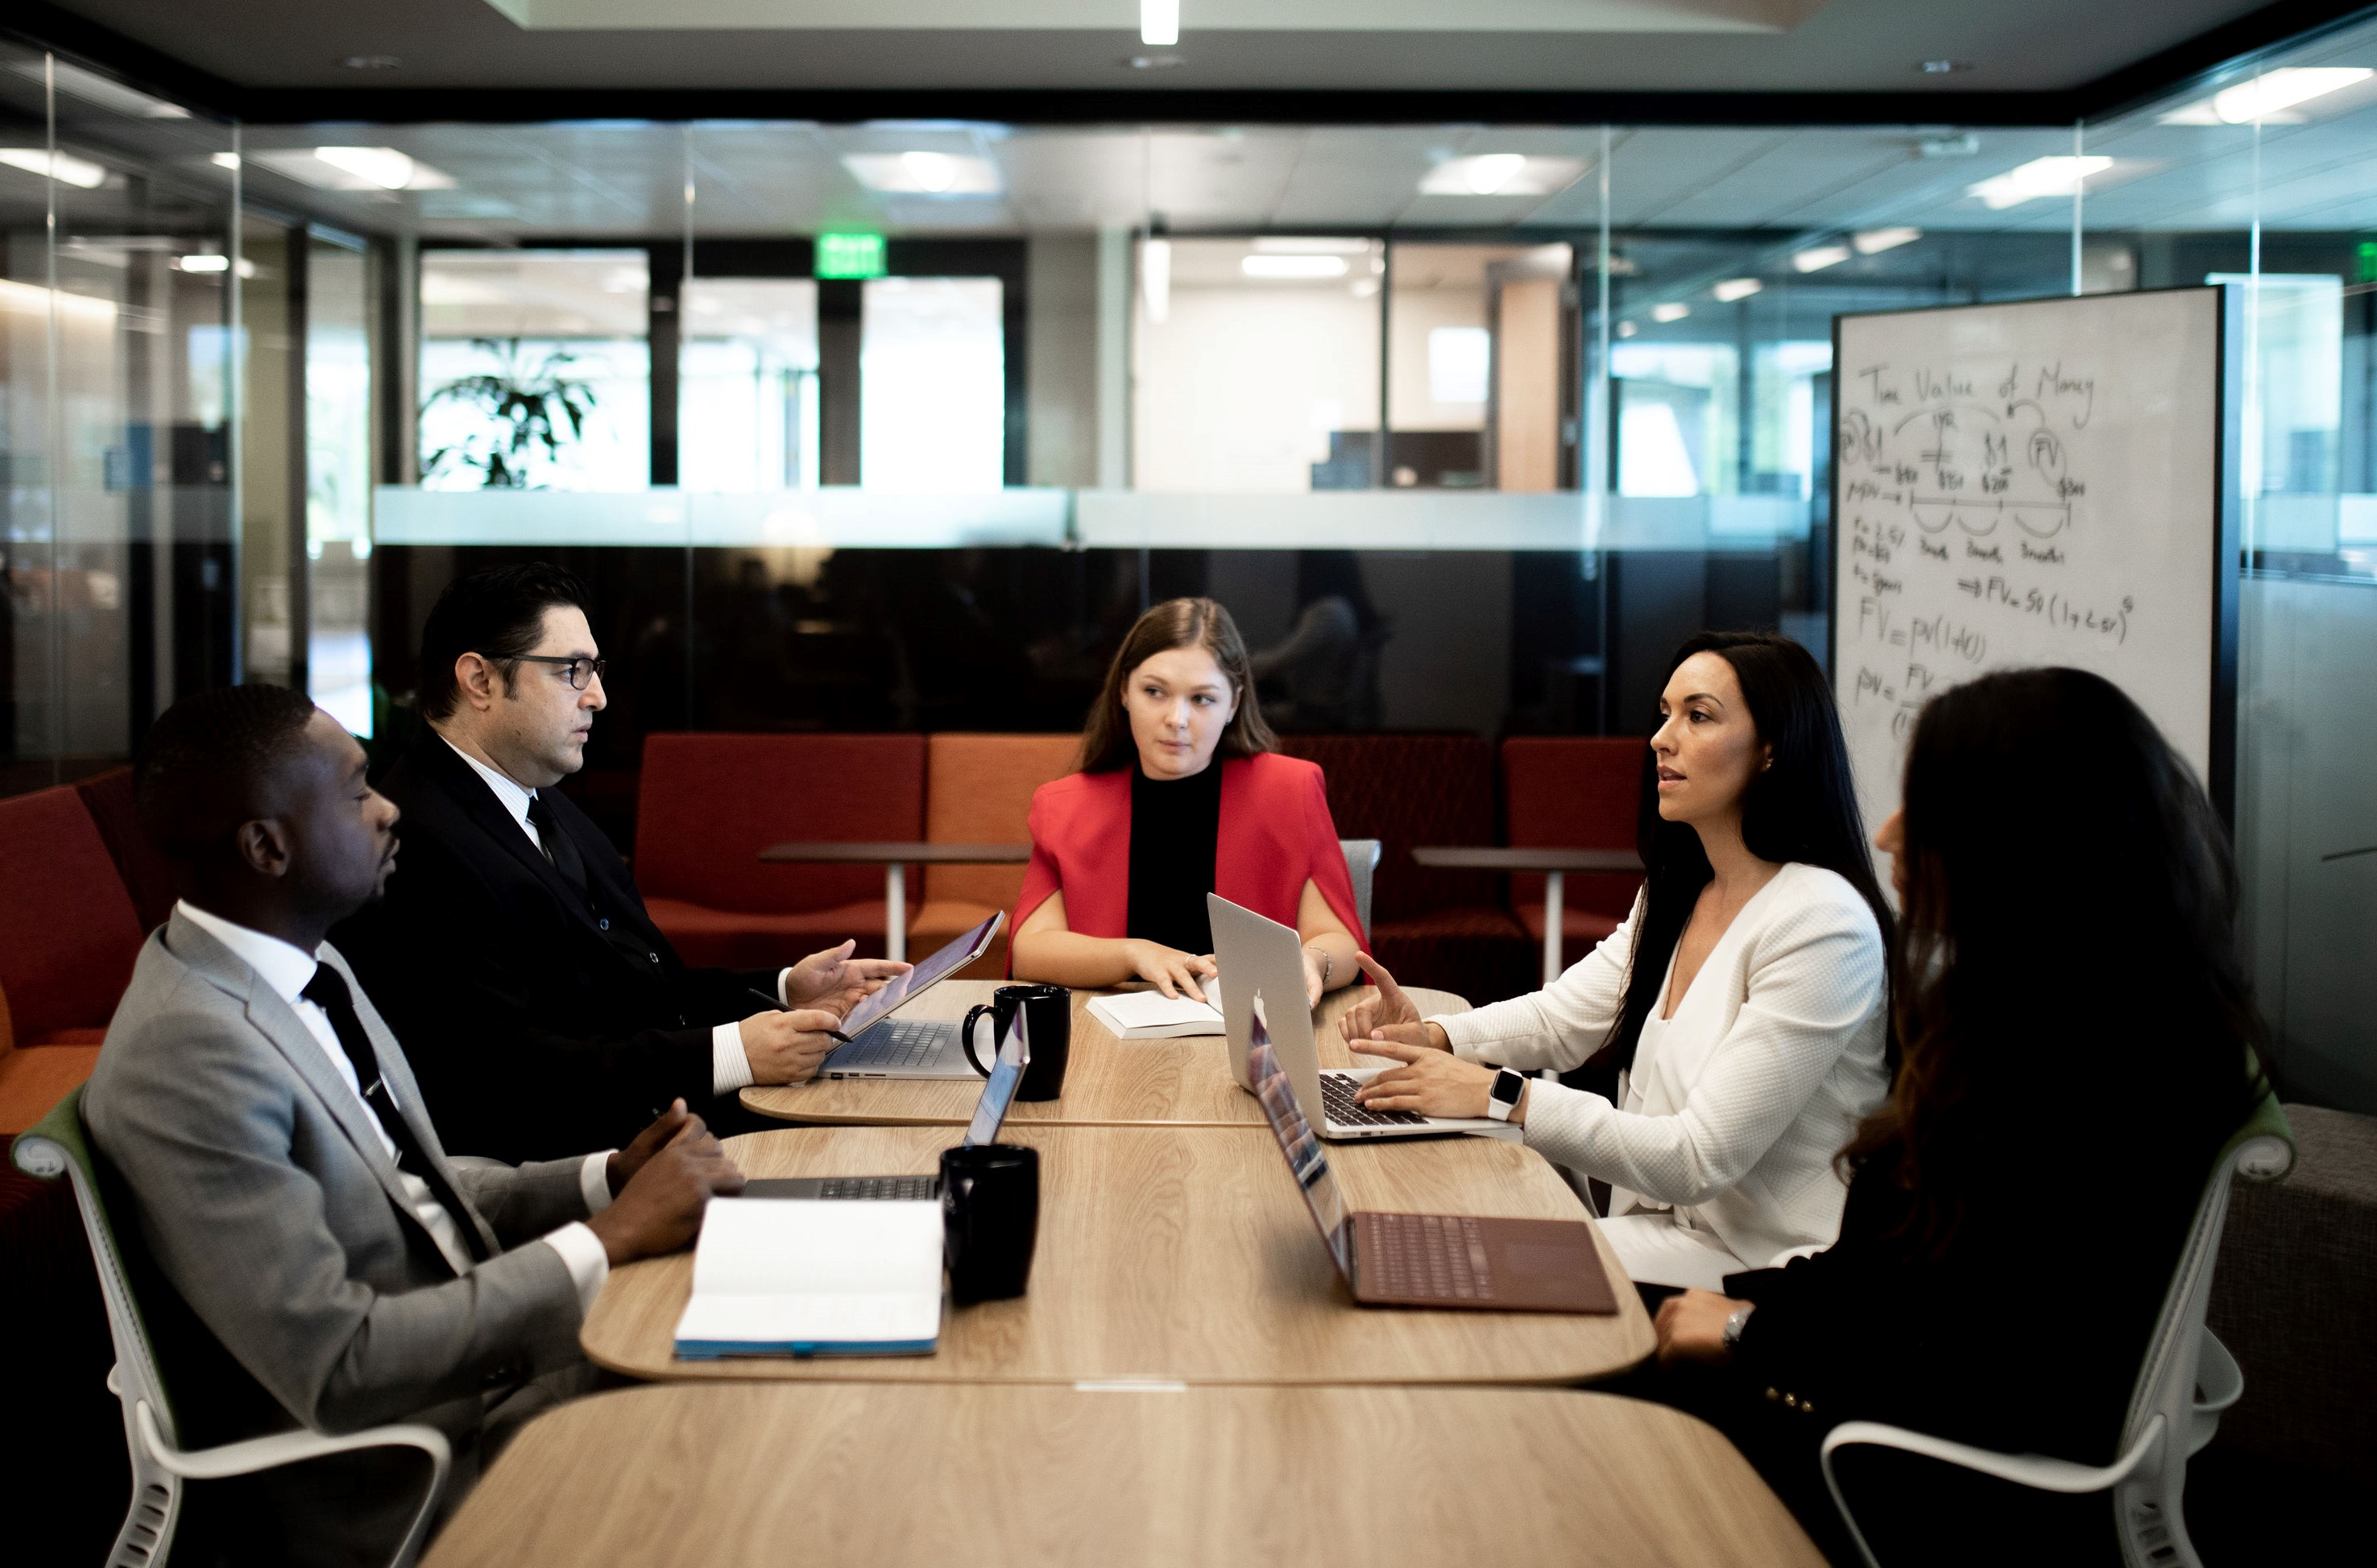 5 students in a meeting room